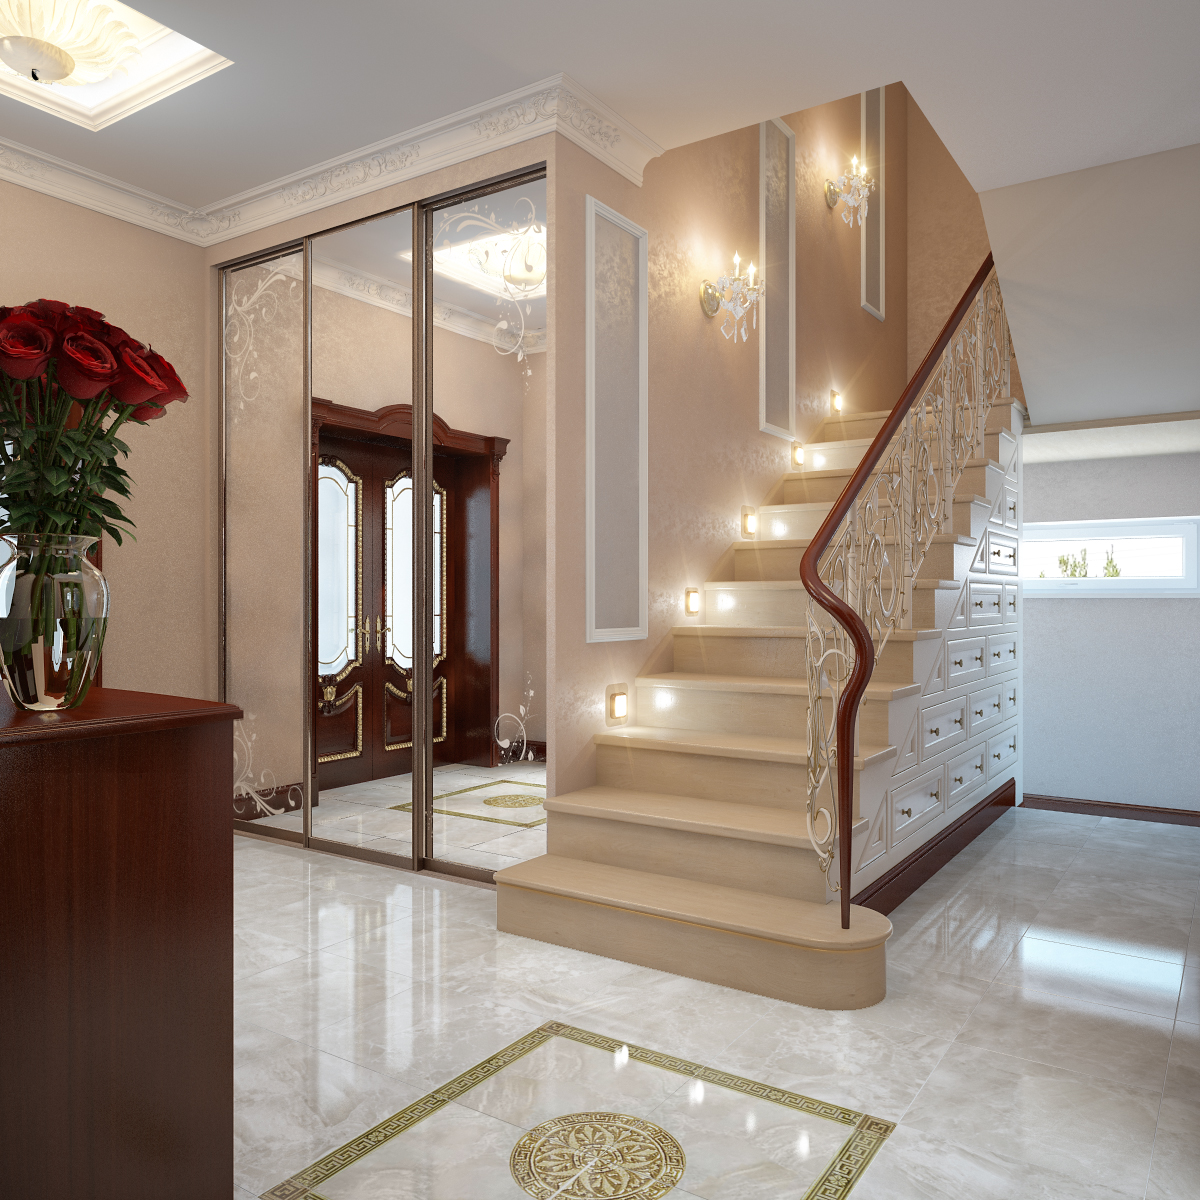 Hallway Interior Design Visualisations Hall Design: Hall. Visualization By Happy Irena